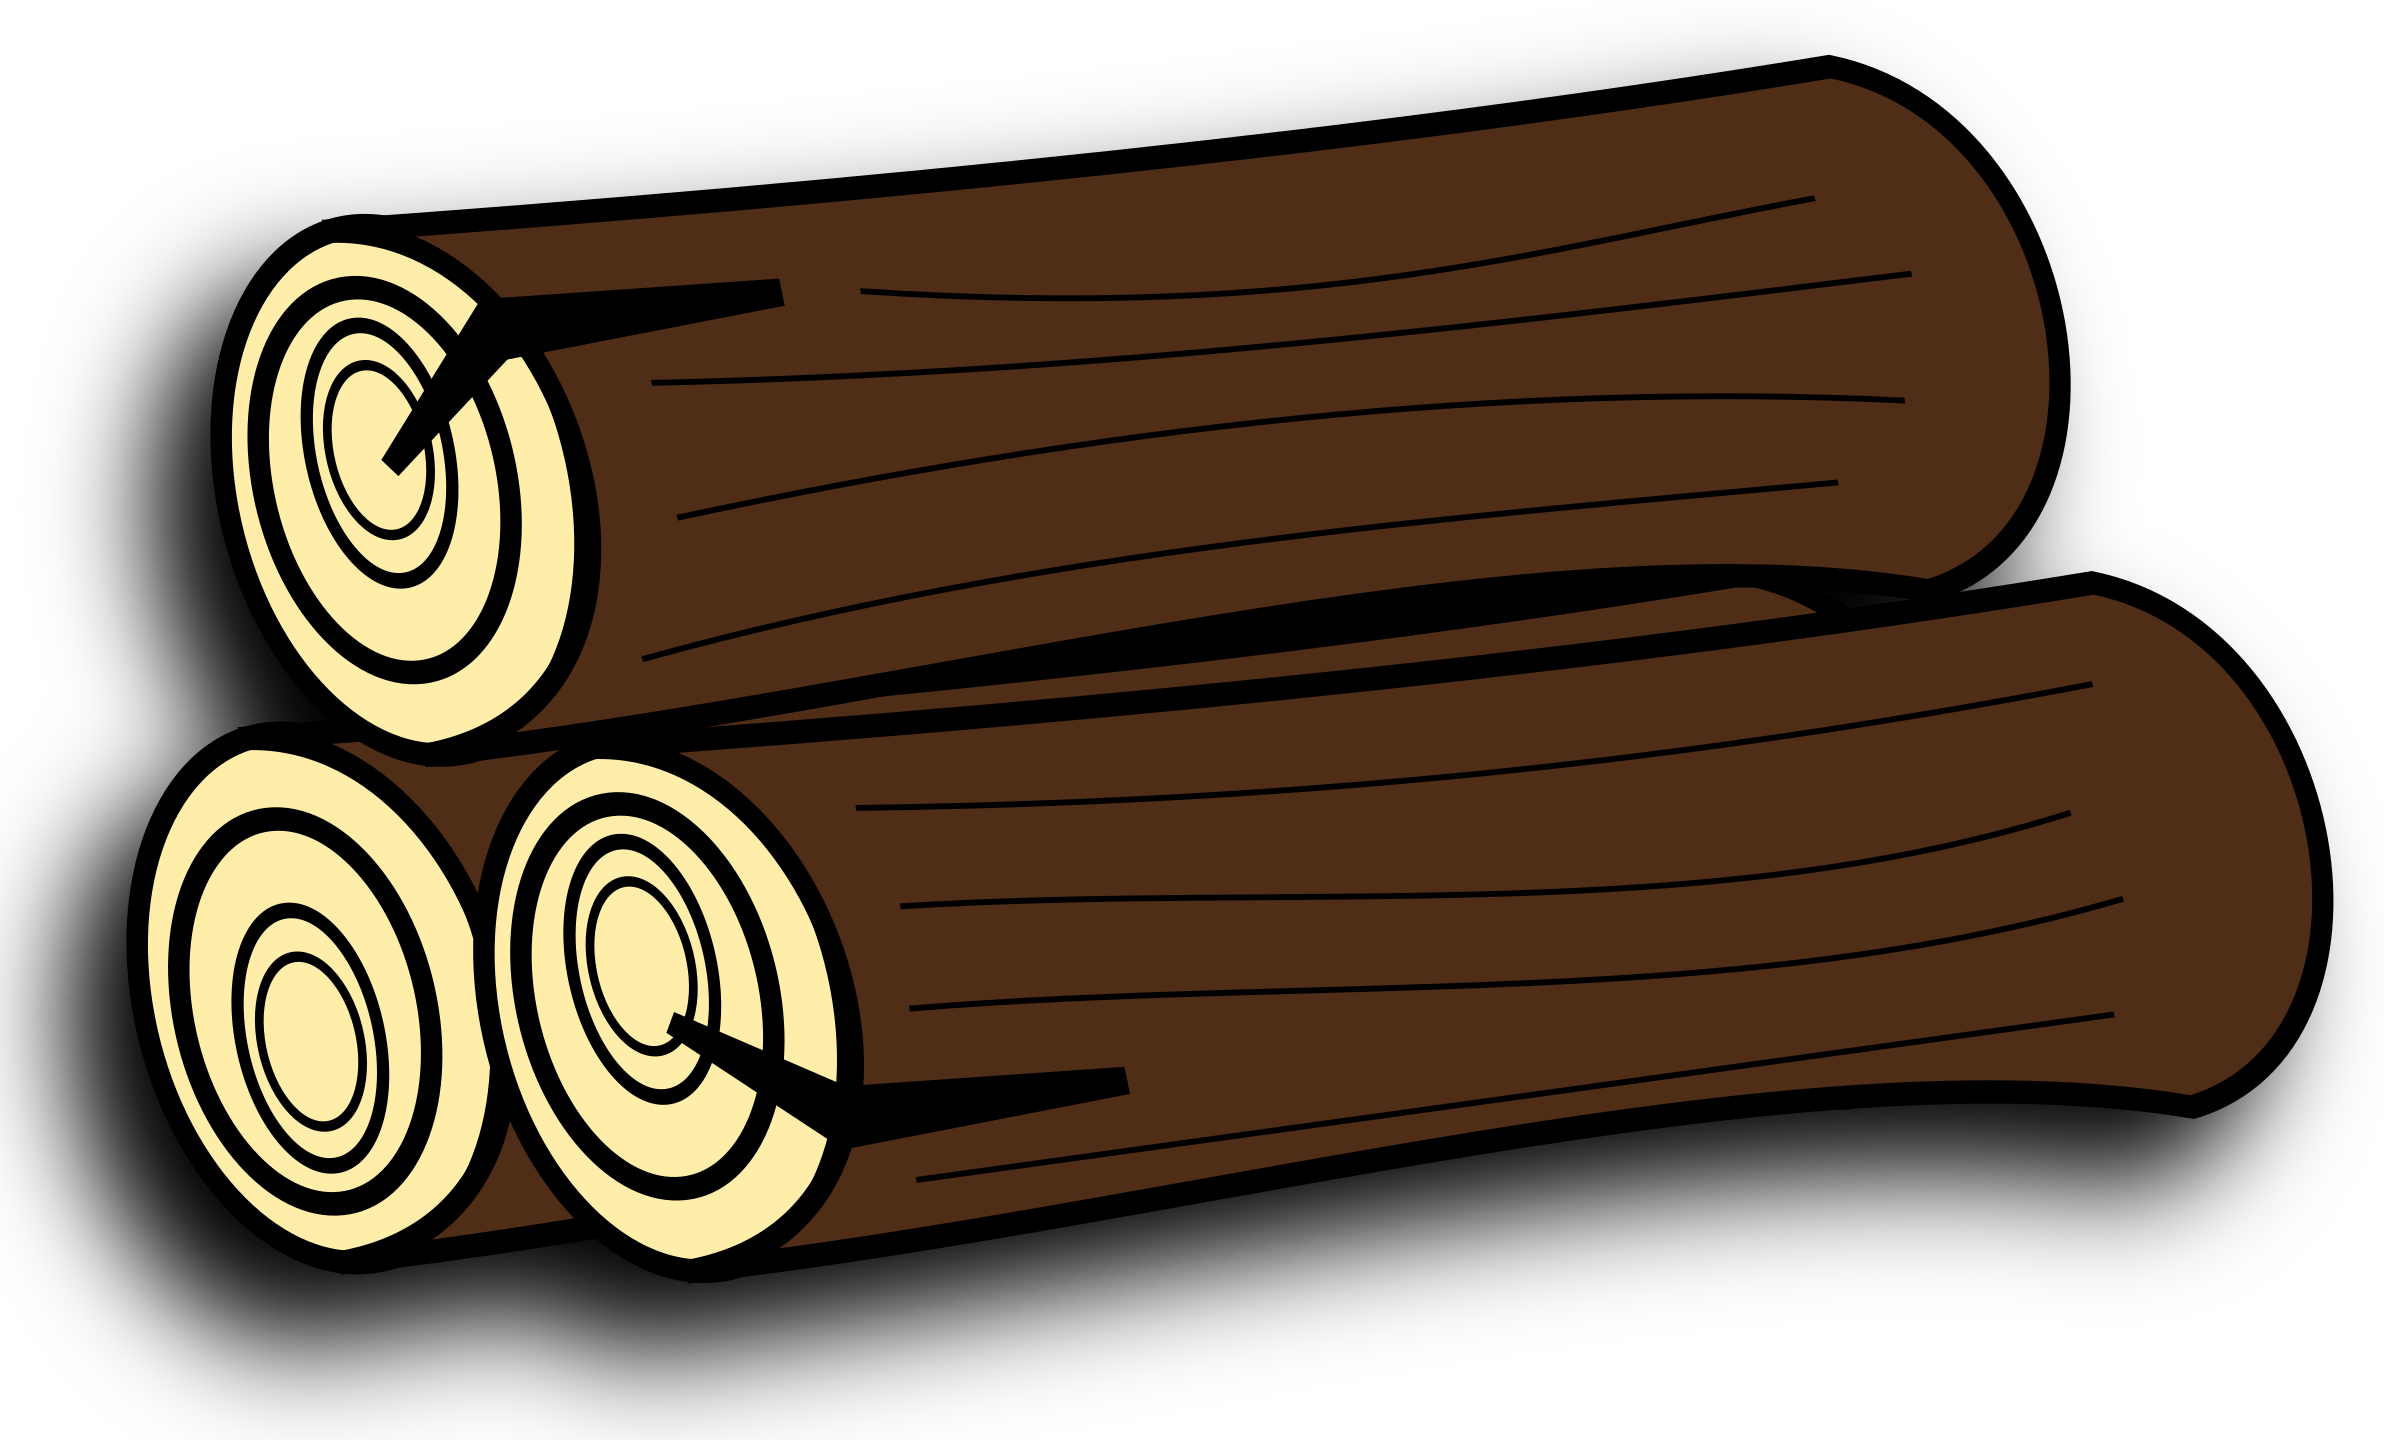 Wood clipart hard object Panda Clipart Free Clipart Clip